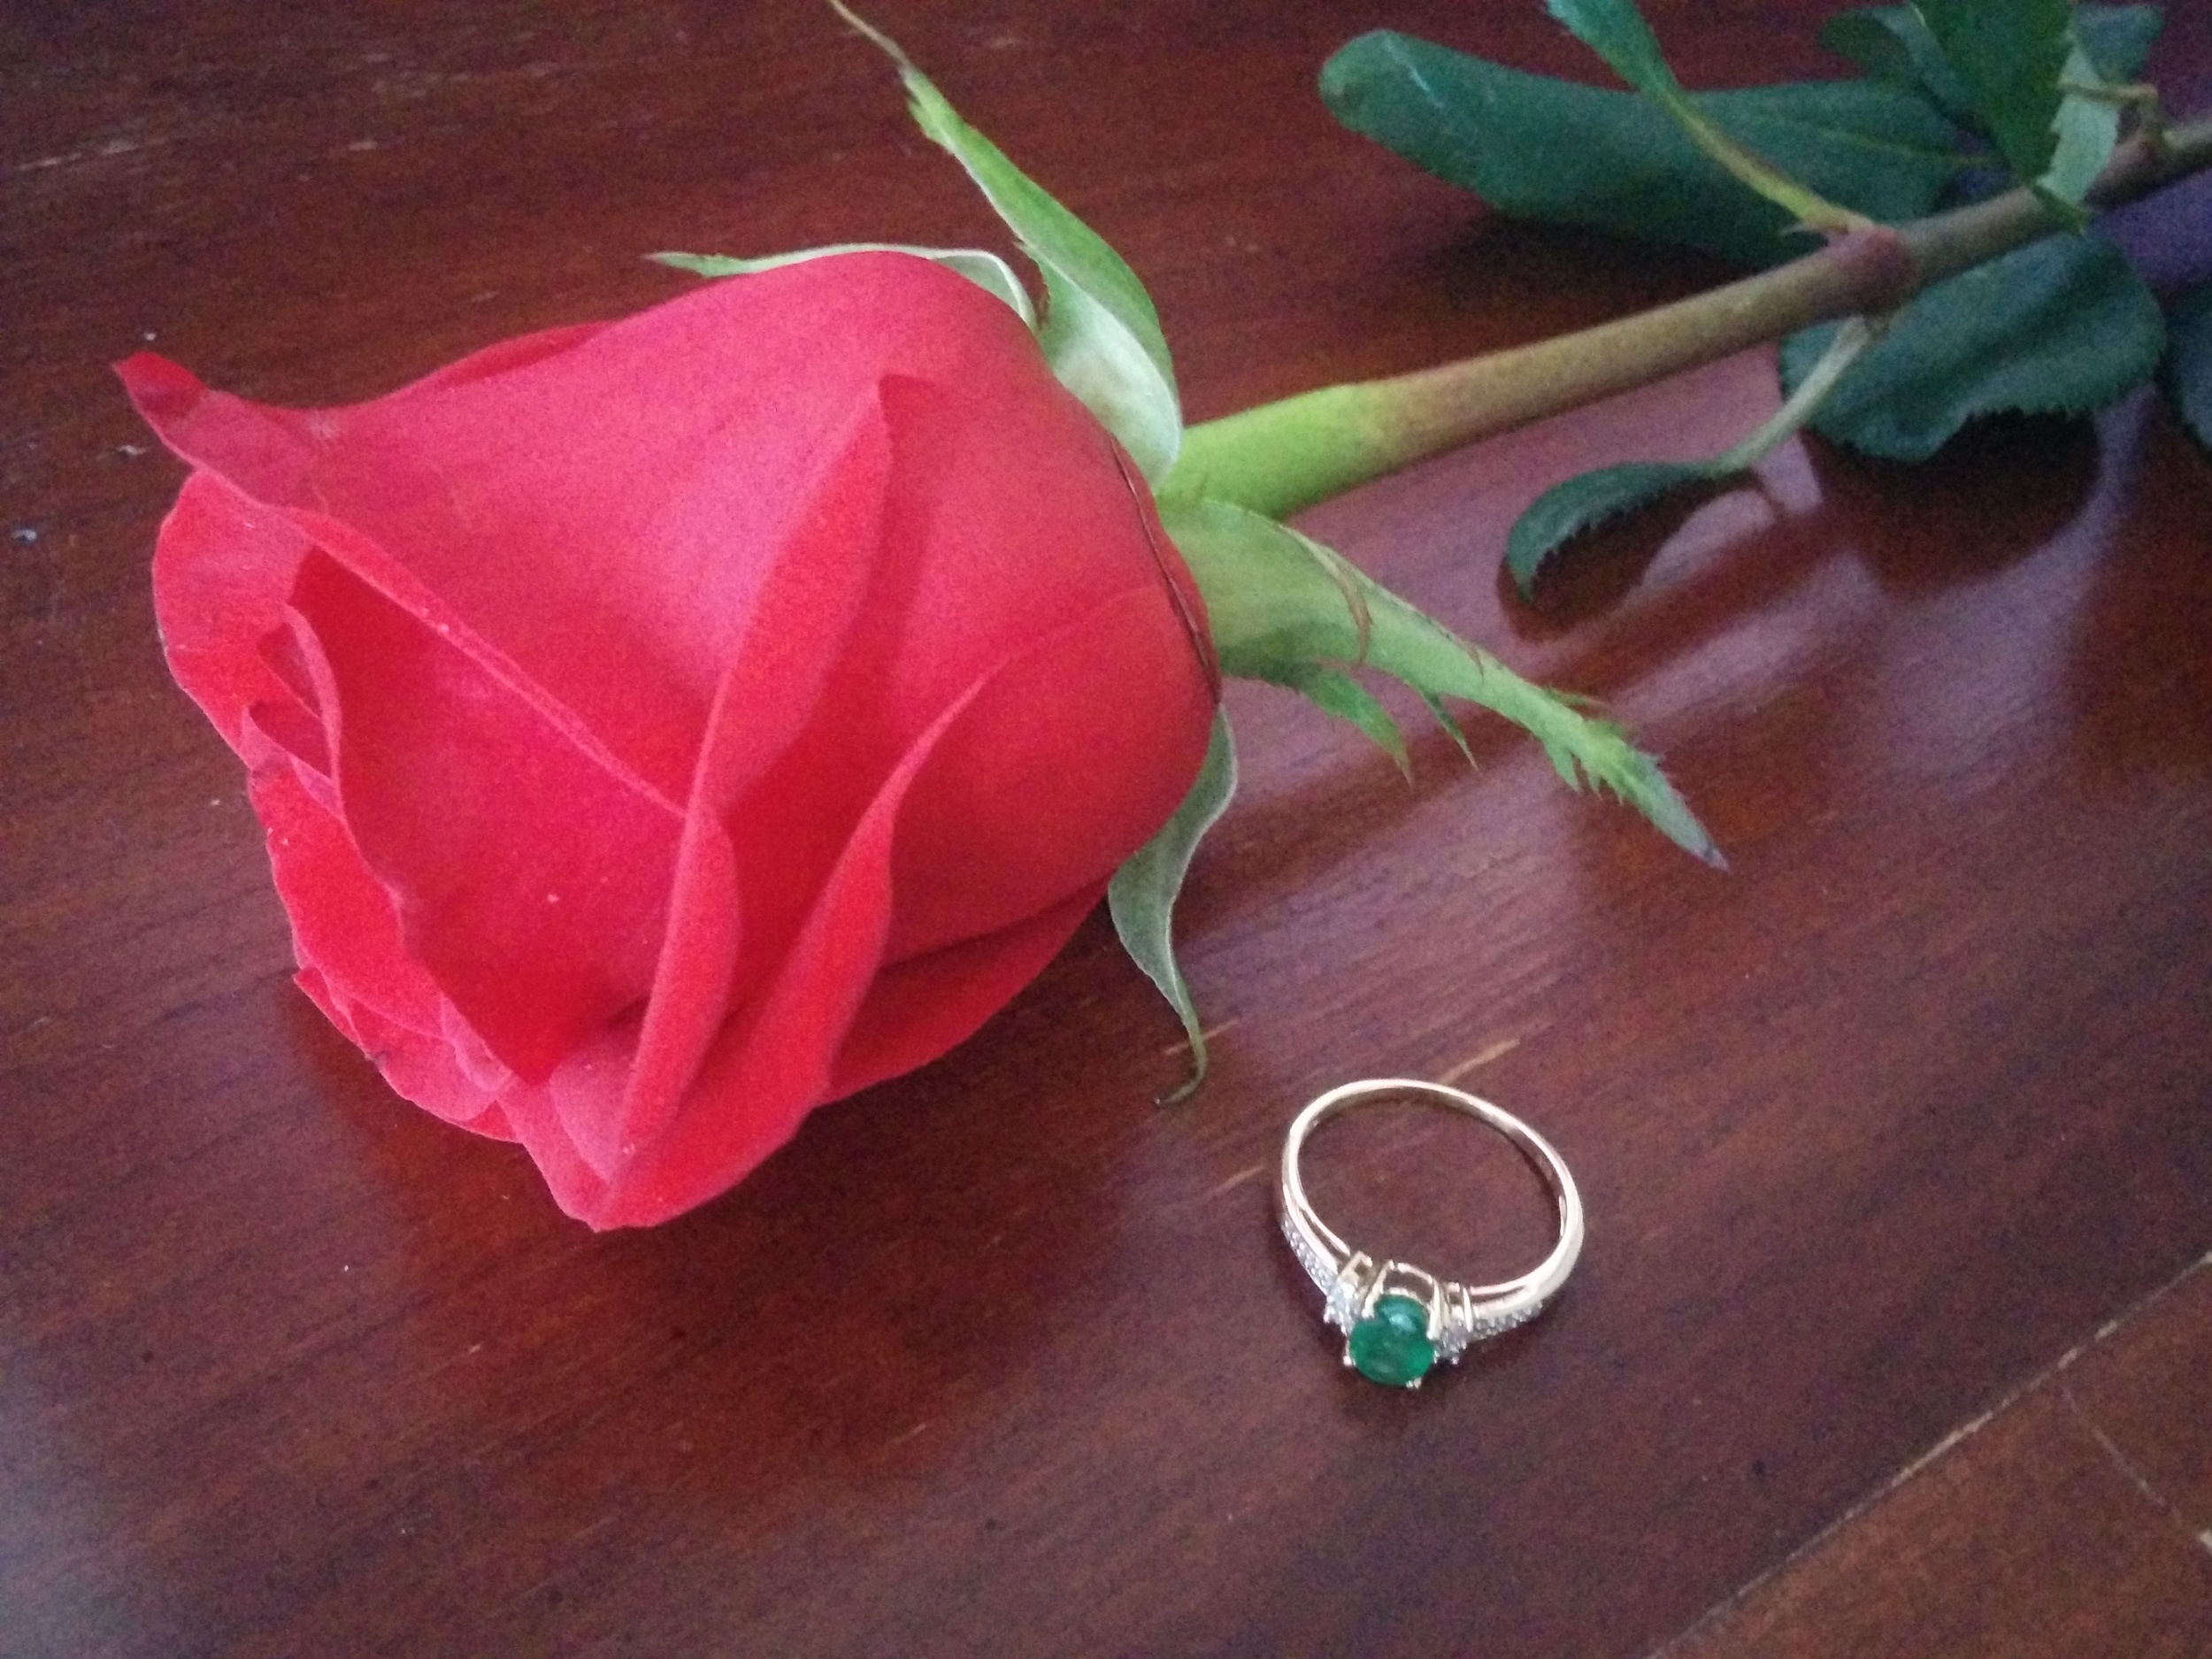 The ring and a rose. Cliche, I know. You hopefully only get married once. Let me have this.